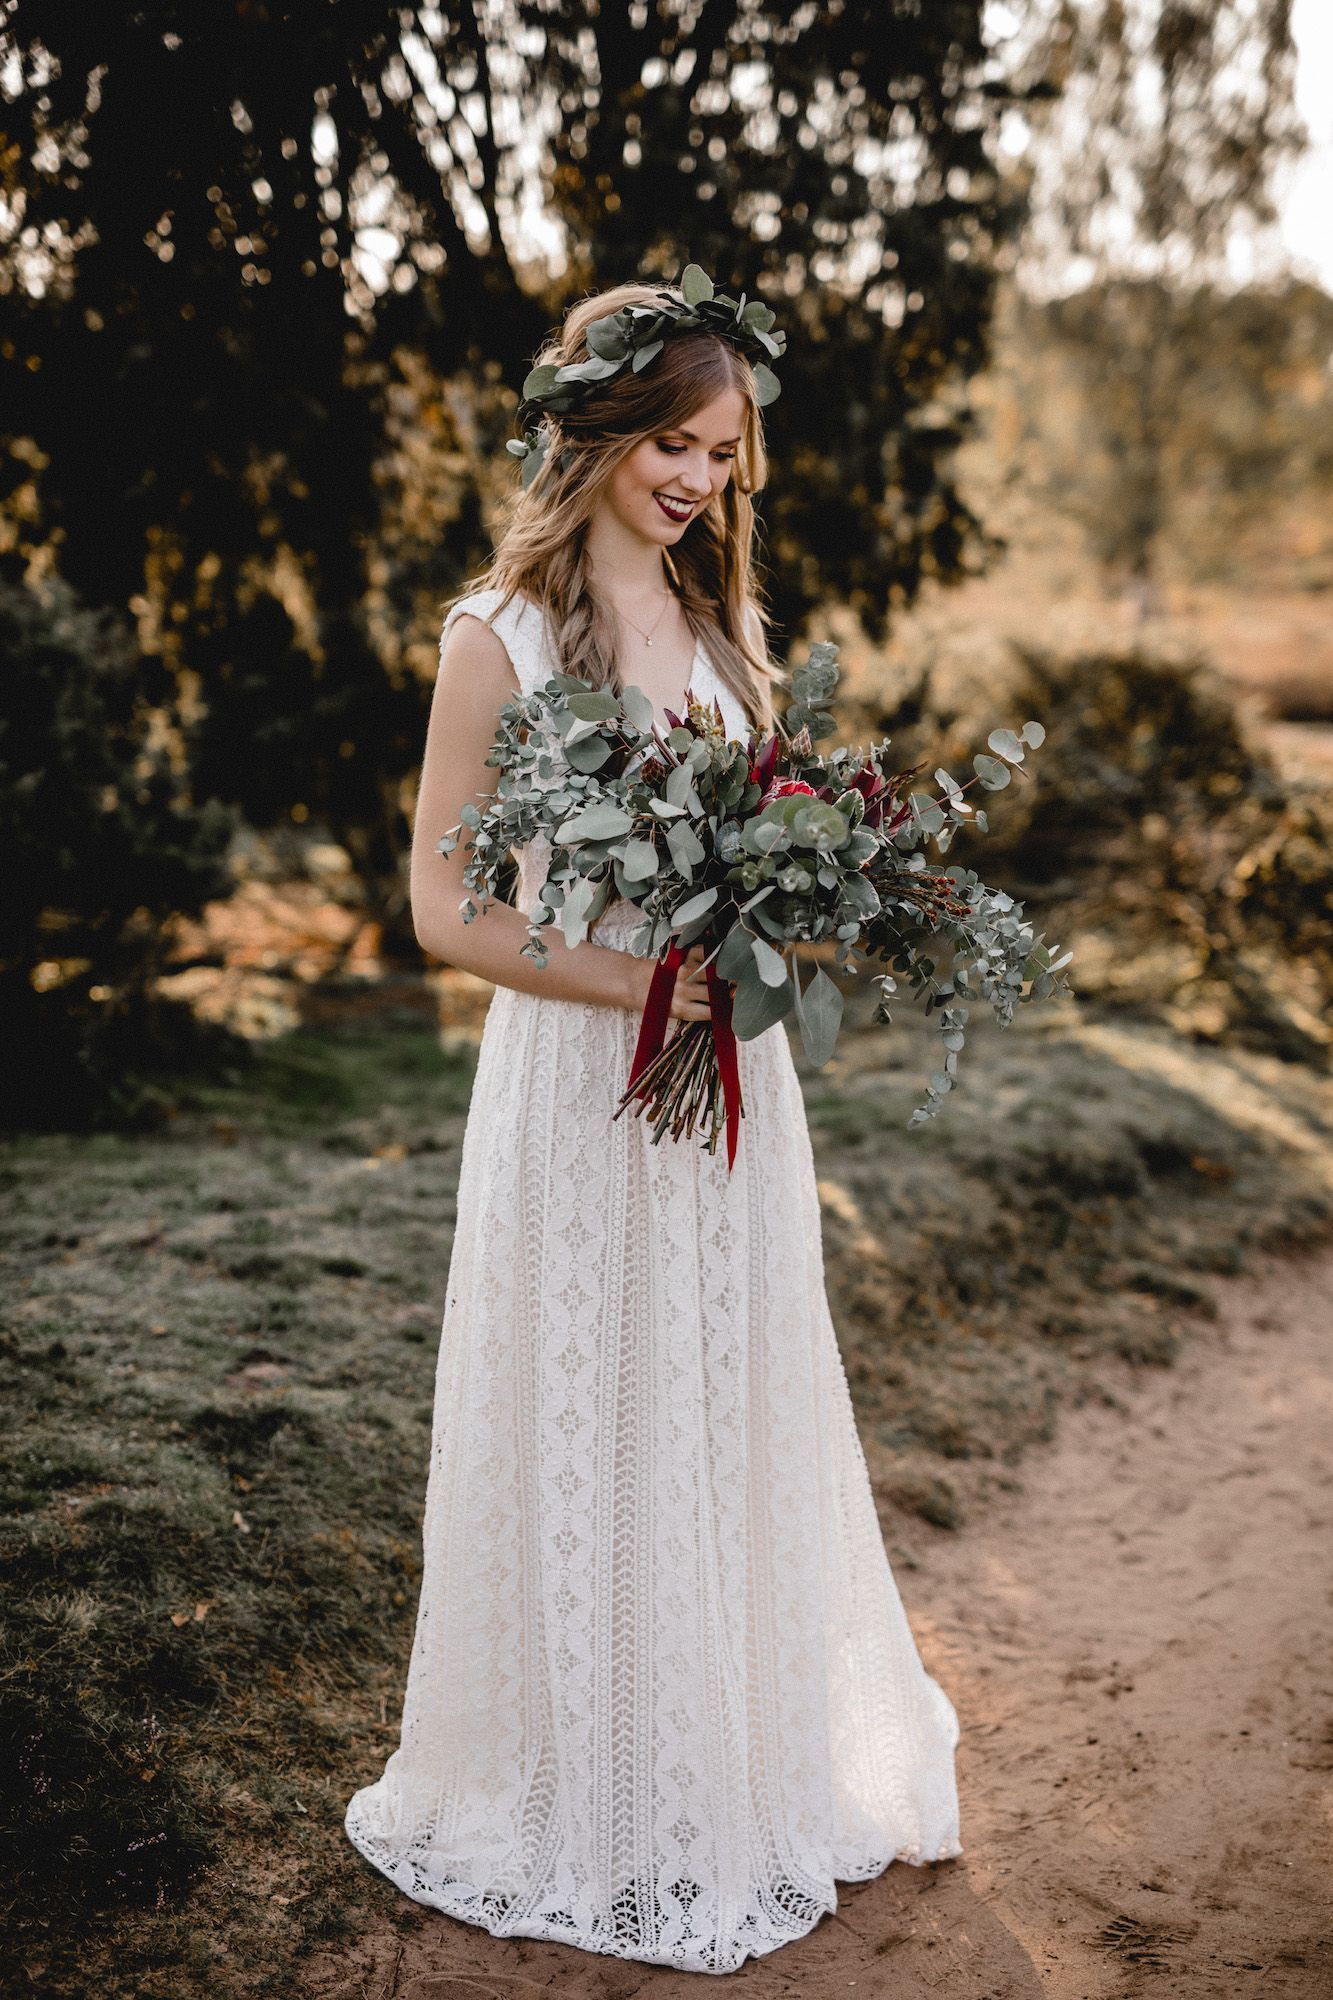 Boho Hochzeit Vintage Hippie Inspiration Kathi Chris Photography Style Wedding Dresses Fashion